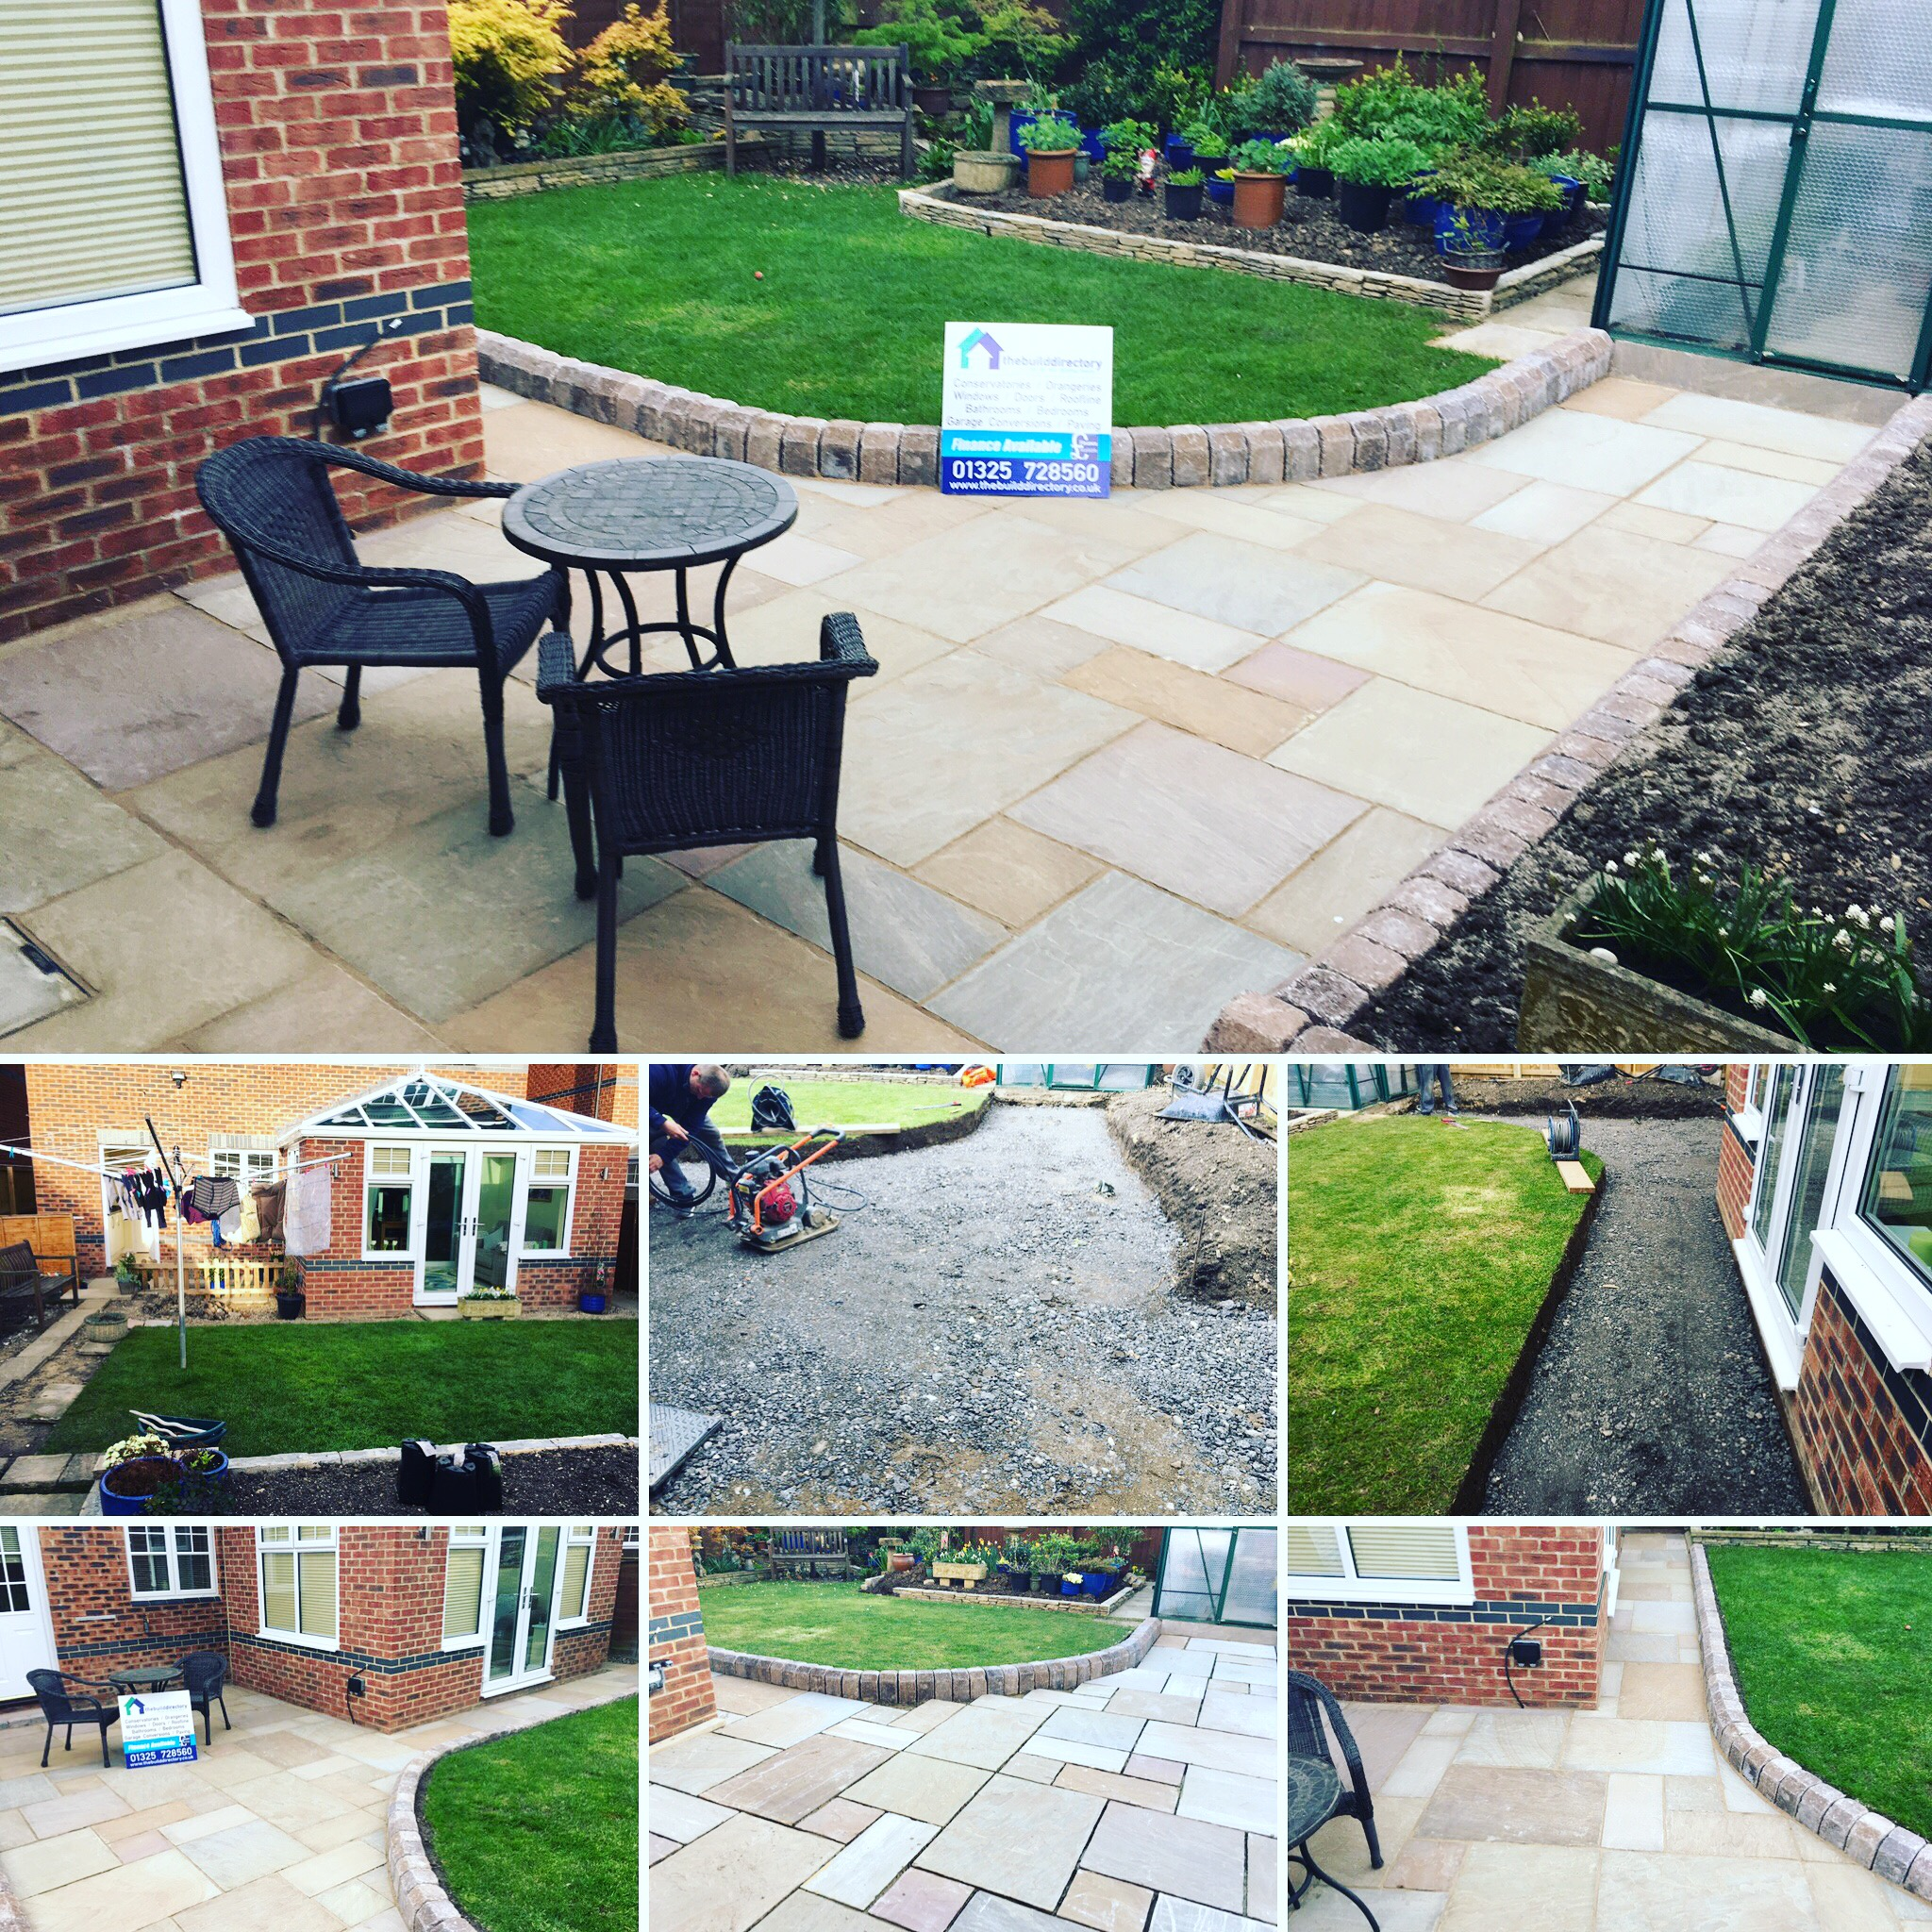 Using Rustic giant kerbs th team have been able to split level the garden for a consistent path, the garden is now bright and spaces with dining area and connective walkways.      We have also connected power from the house to the green house with armoured cable to provide additional power descreatley. Very pretty!! Well done team and thanks for looking after them Mr&Mrs Customer for the repeat loyal business!